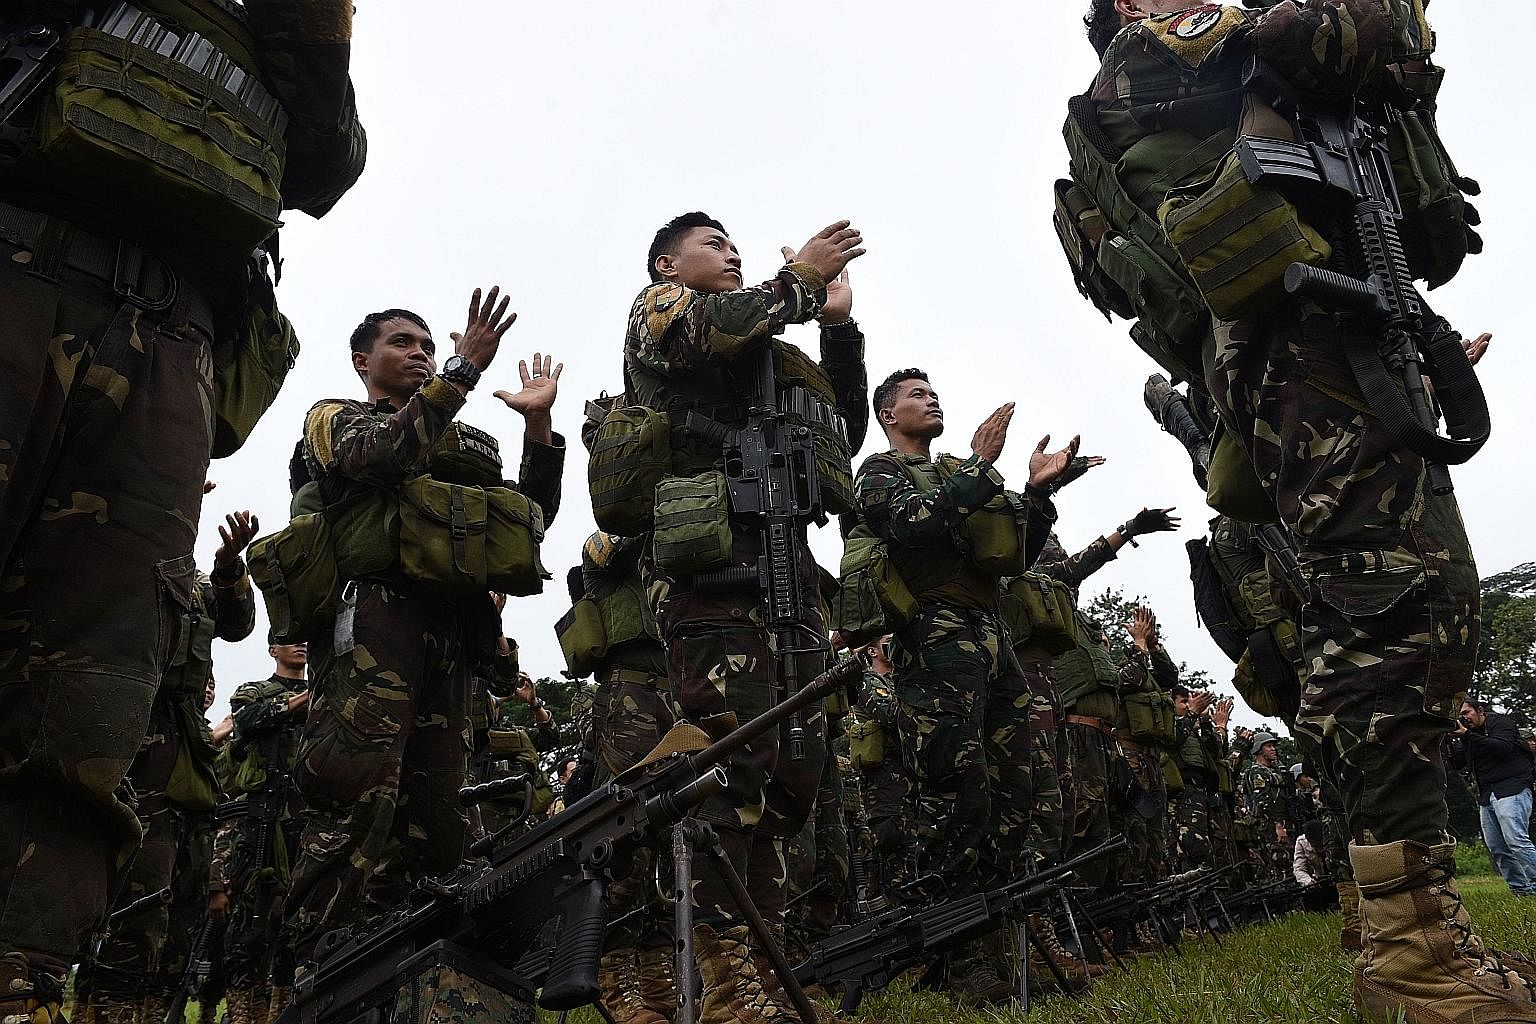 Philippine soldiers who fought against ISIS-affiliated militants applaud during their send-off ceremony inside a military camp in Marawi on the southern island of Mindanao yesterday. While the months-long siege of Marawi has effectively ended, the wa